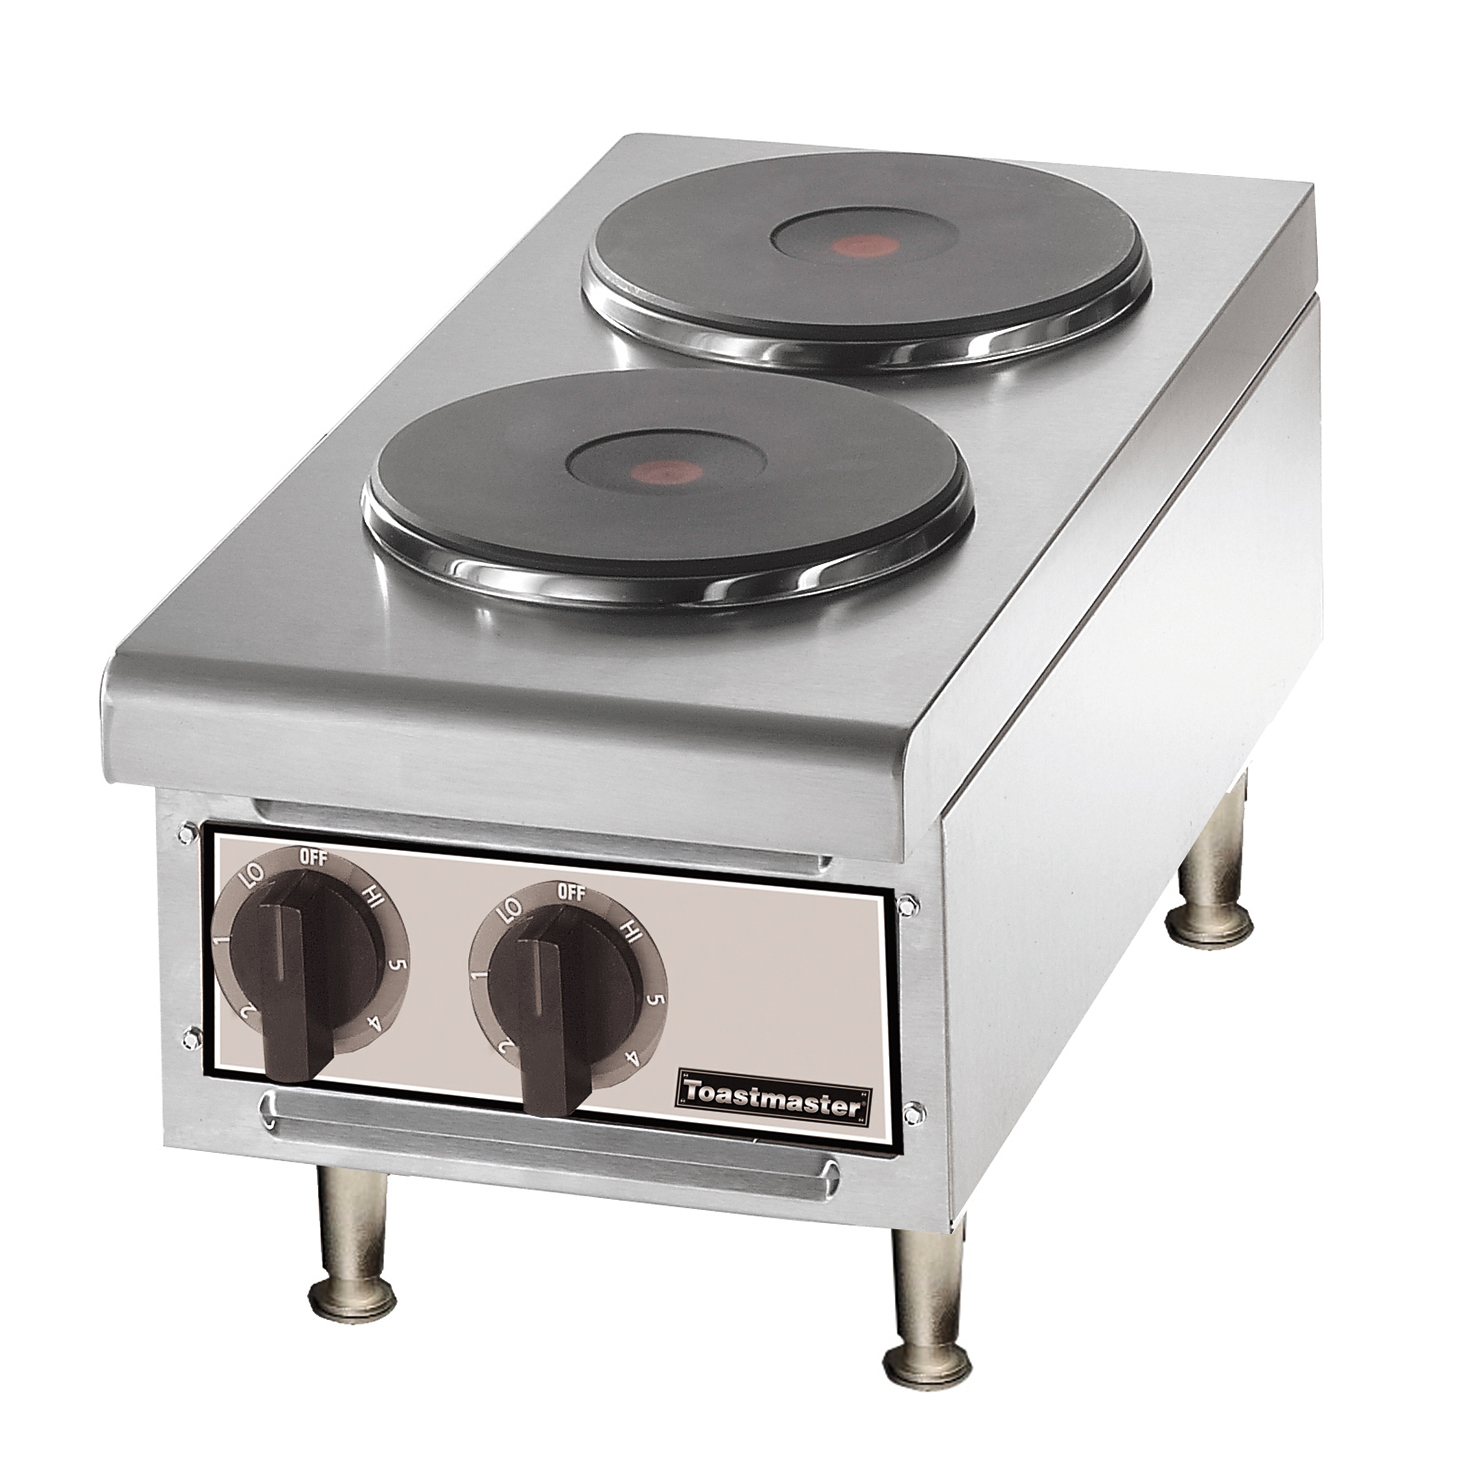 TMHPF Toastmaster hotplate, countertop, electric